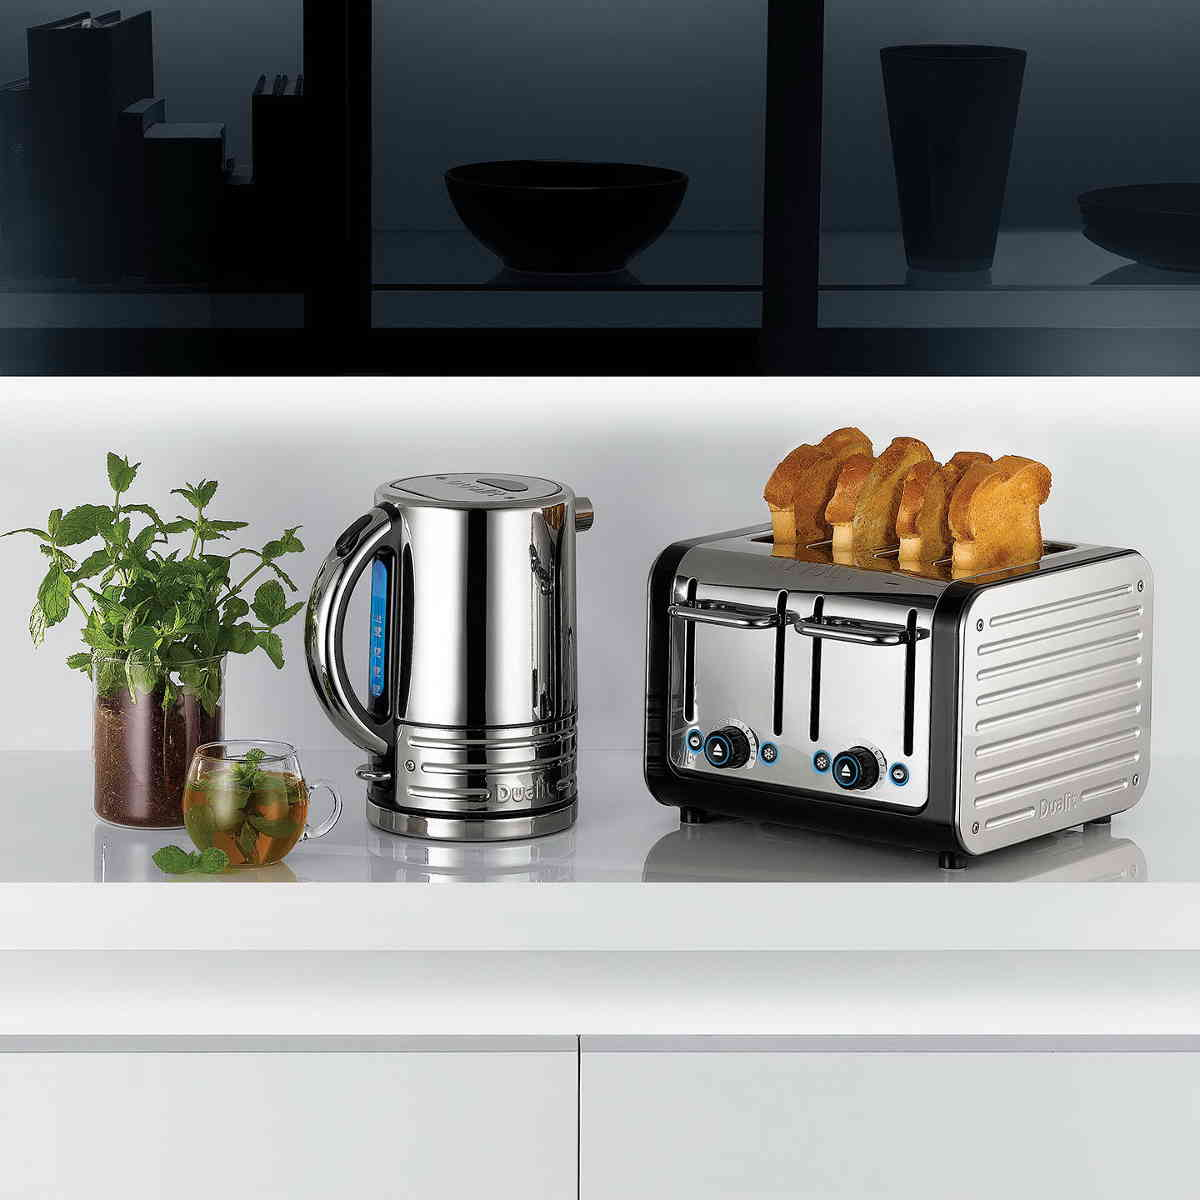 Dualit Architect 2 slice toaster. Polished Body, Black Trim